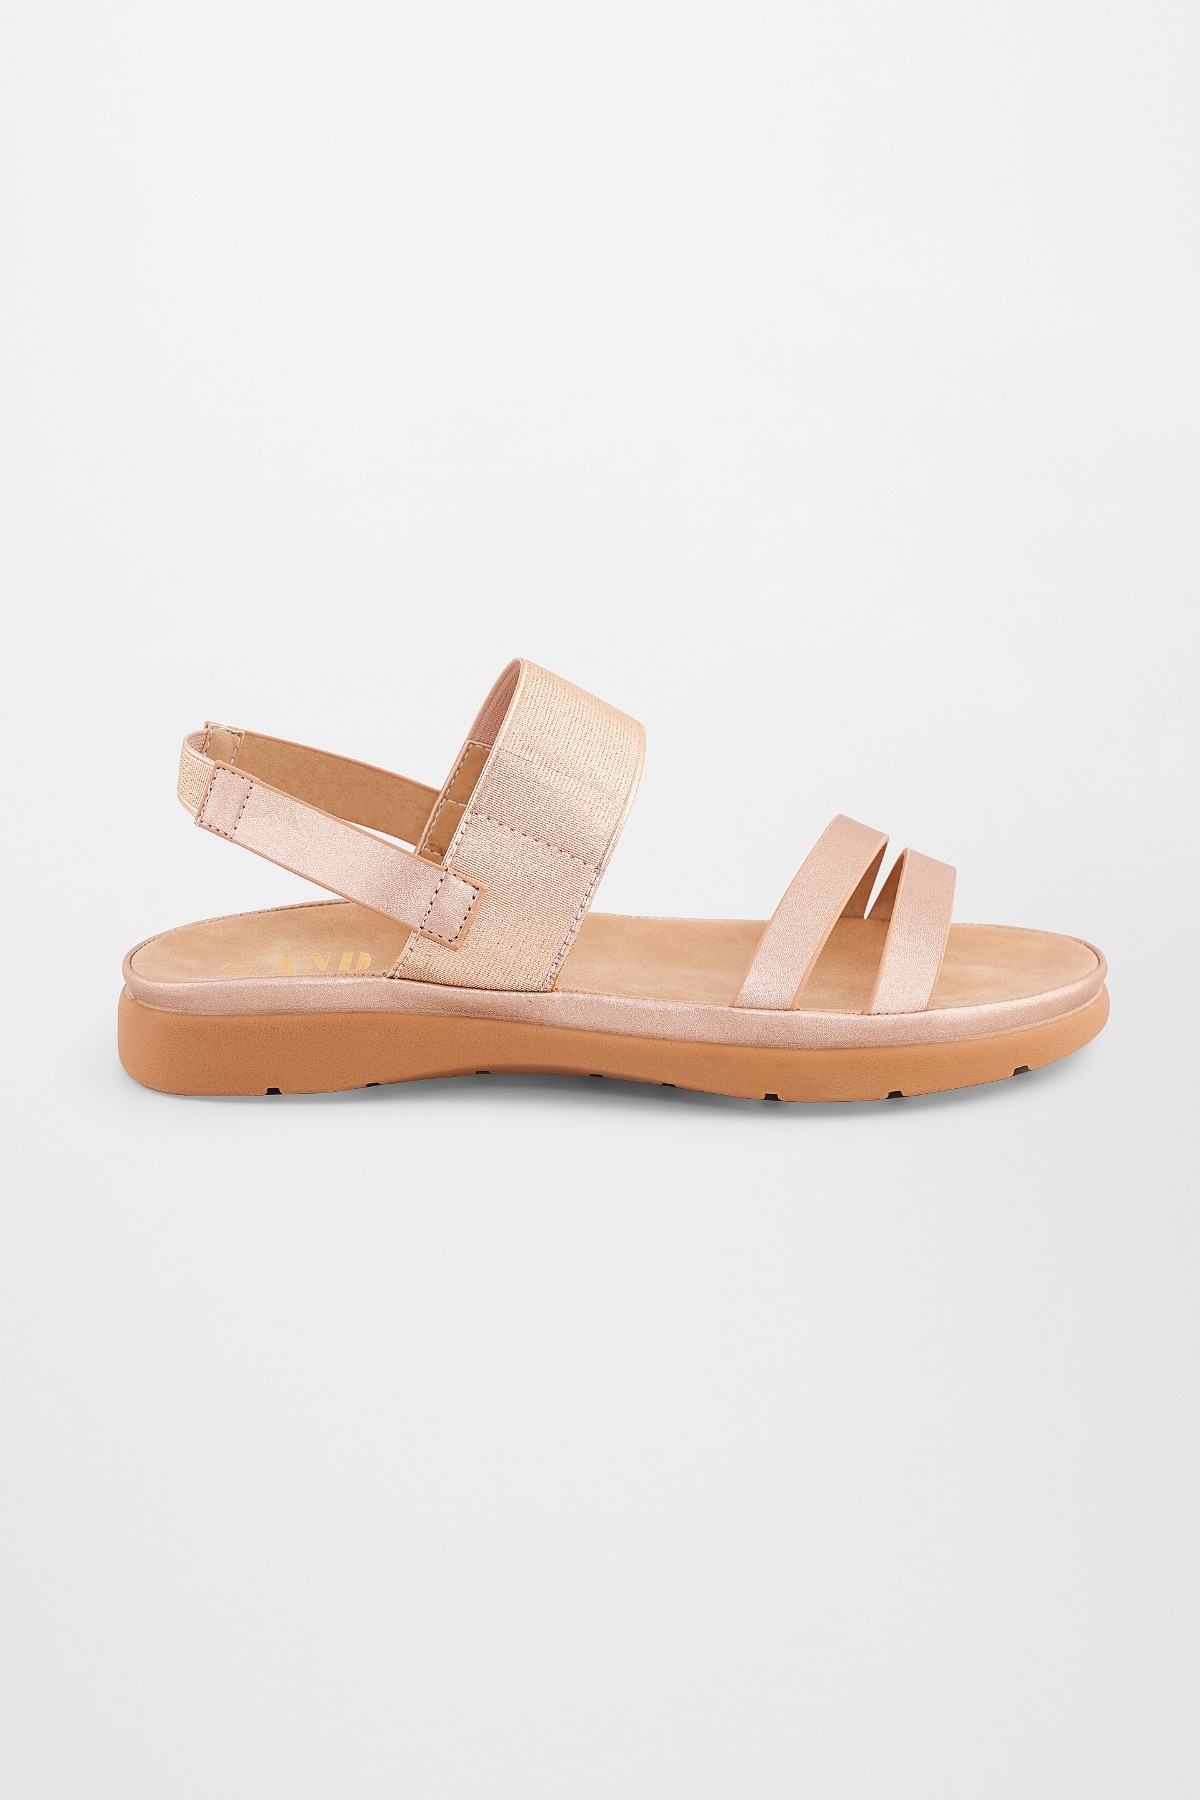 AND   Golden Sandals